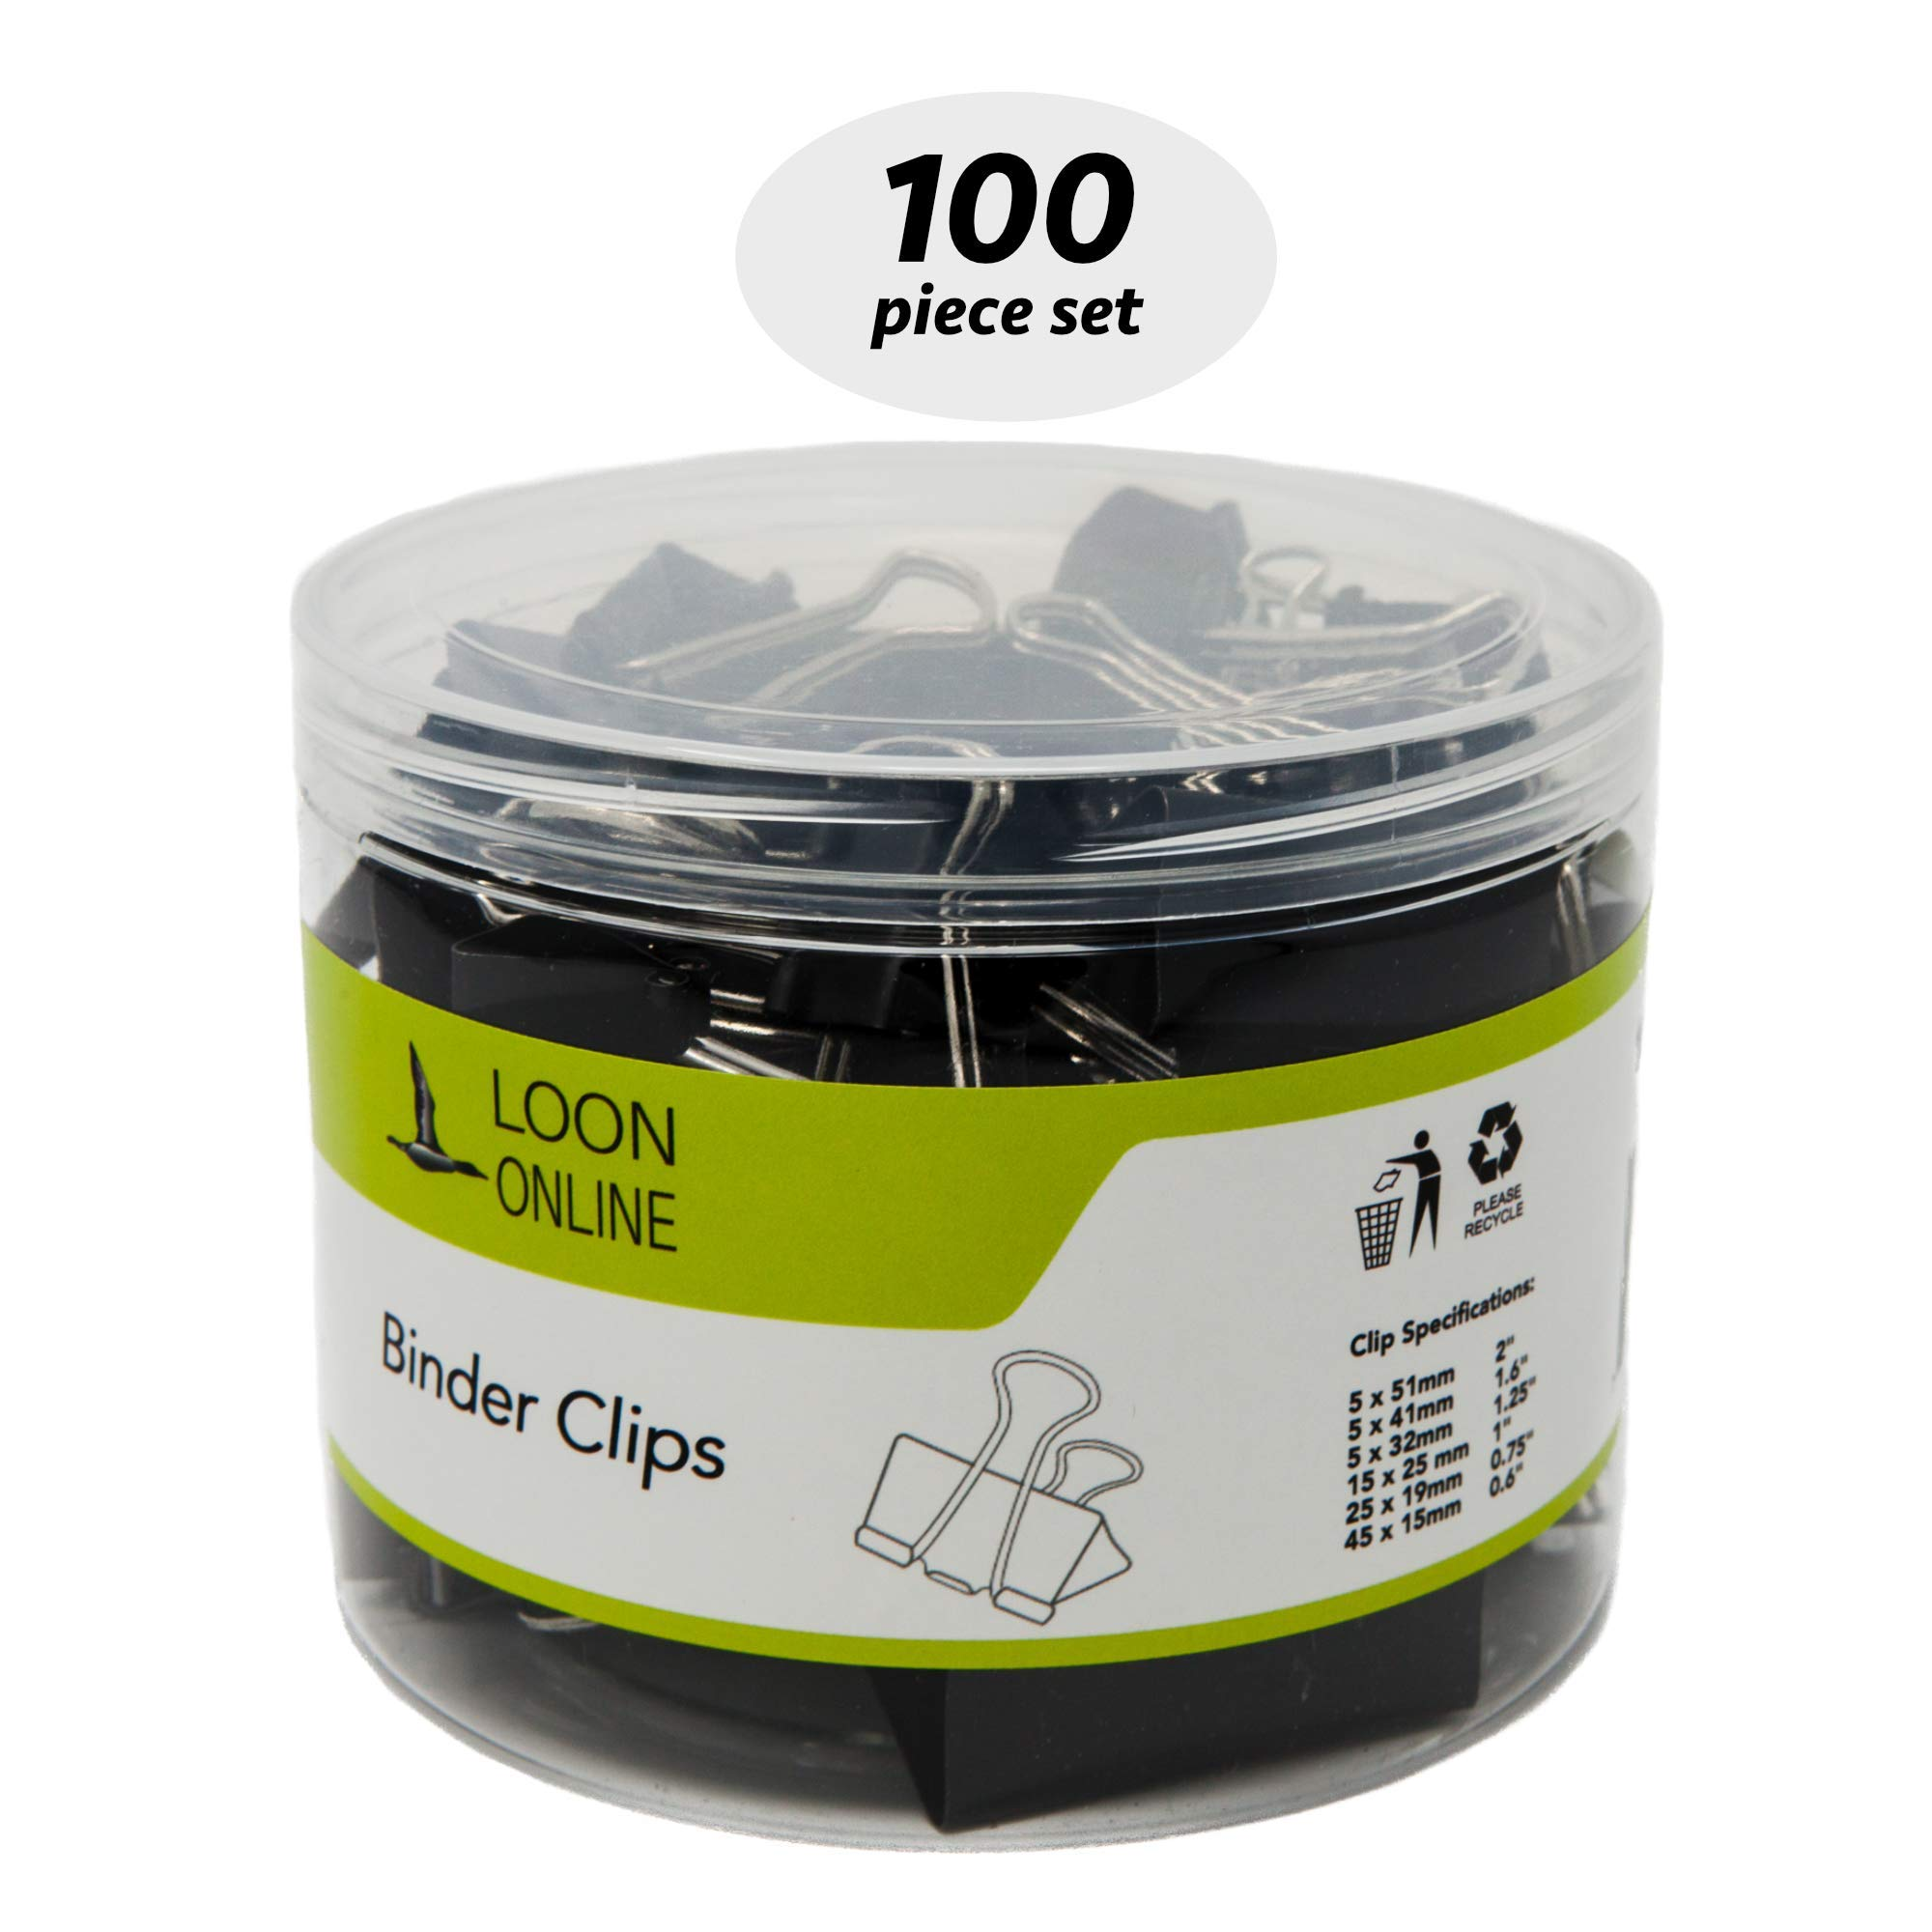 Binder Paper Bulldog Clips by Loon Online | Mini Small Medium Large Jumbo Assorted Sizes Paper Holder in Tub/Box Black 100 pcs